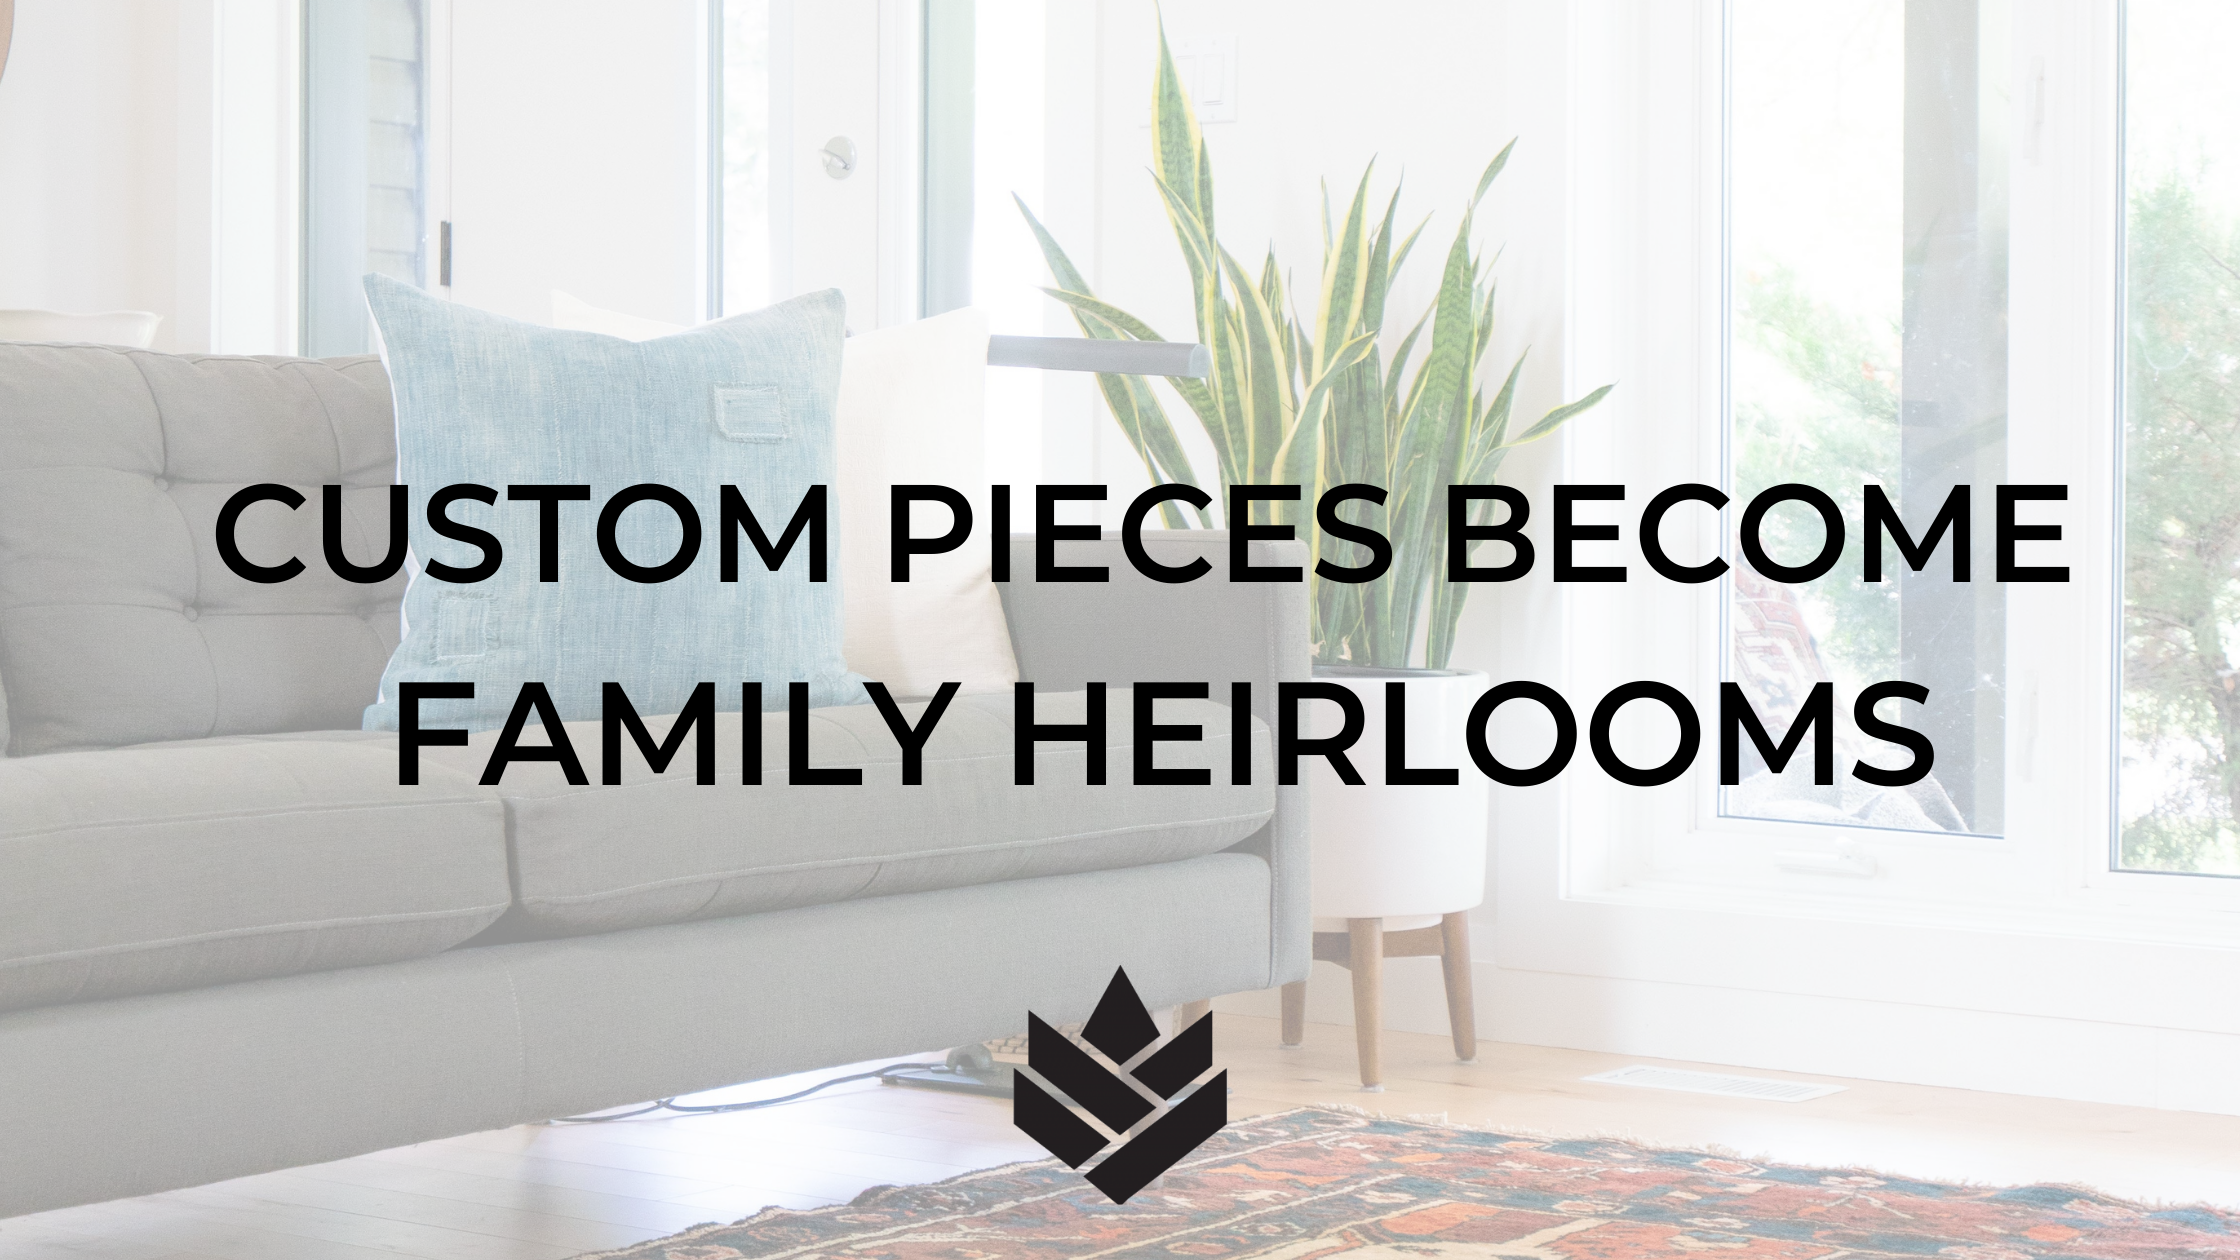 Custom Pieces Become Family Heirlooms